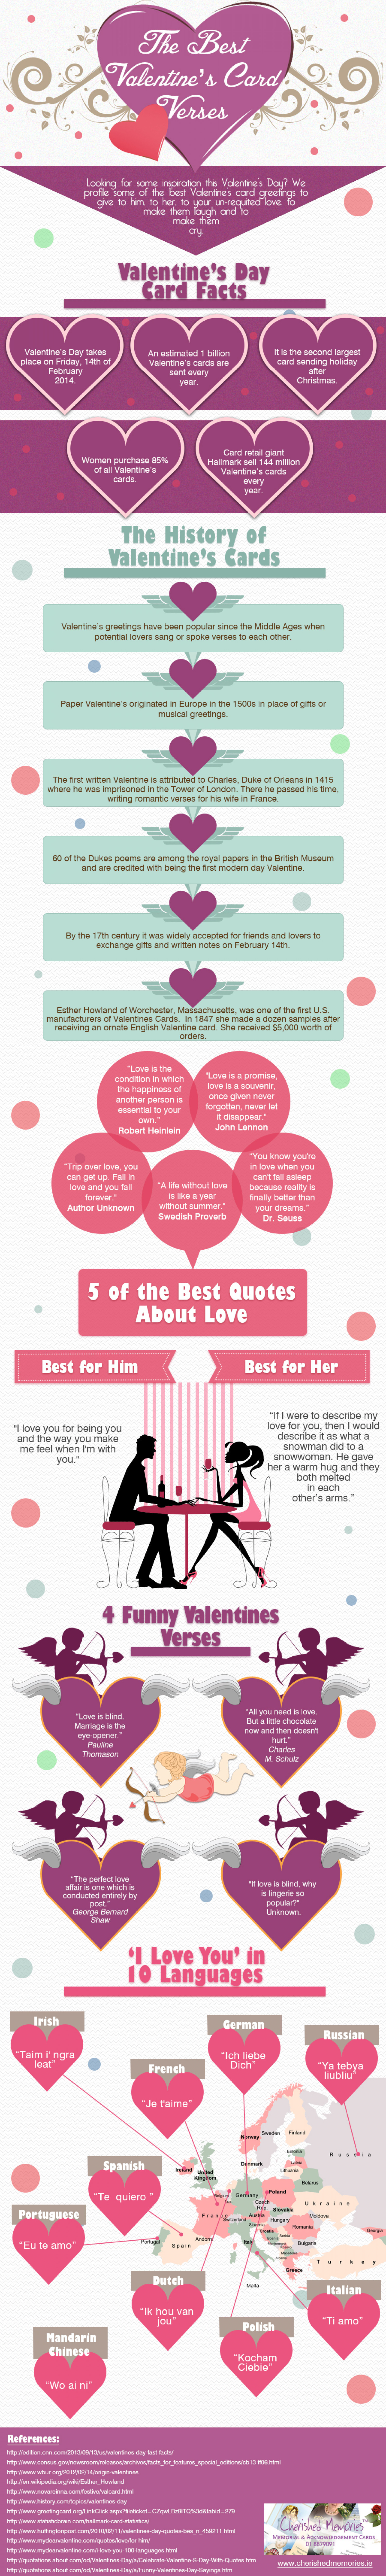 The Best Valentine's Card Verses Infographic